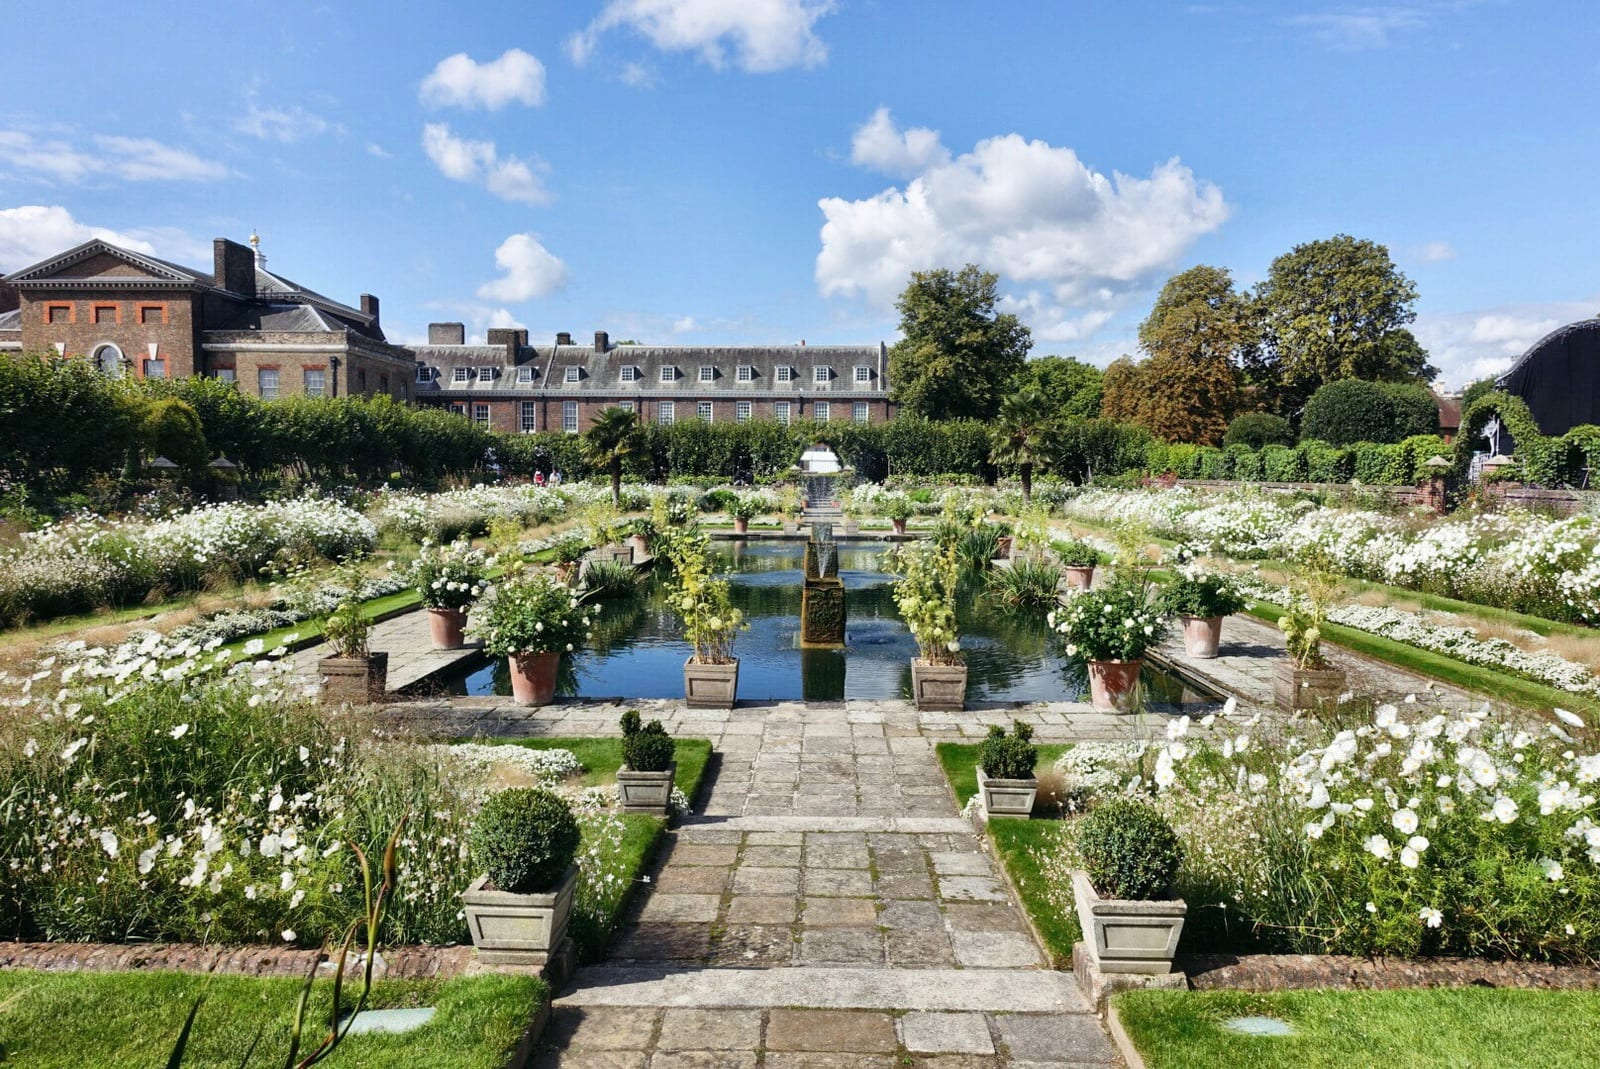 Sunken garden at Kensington Palace Gardens